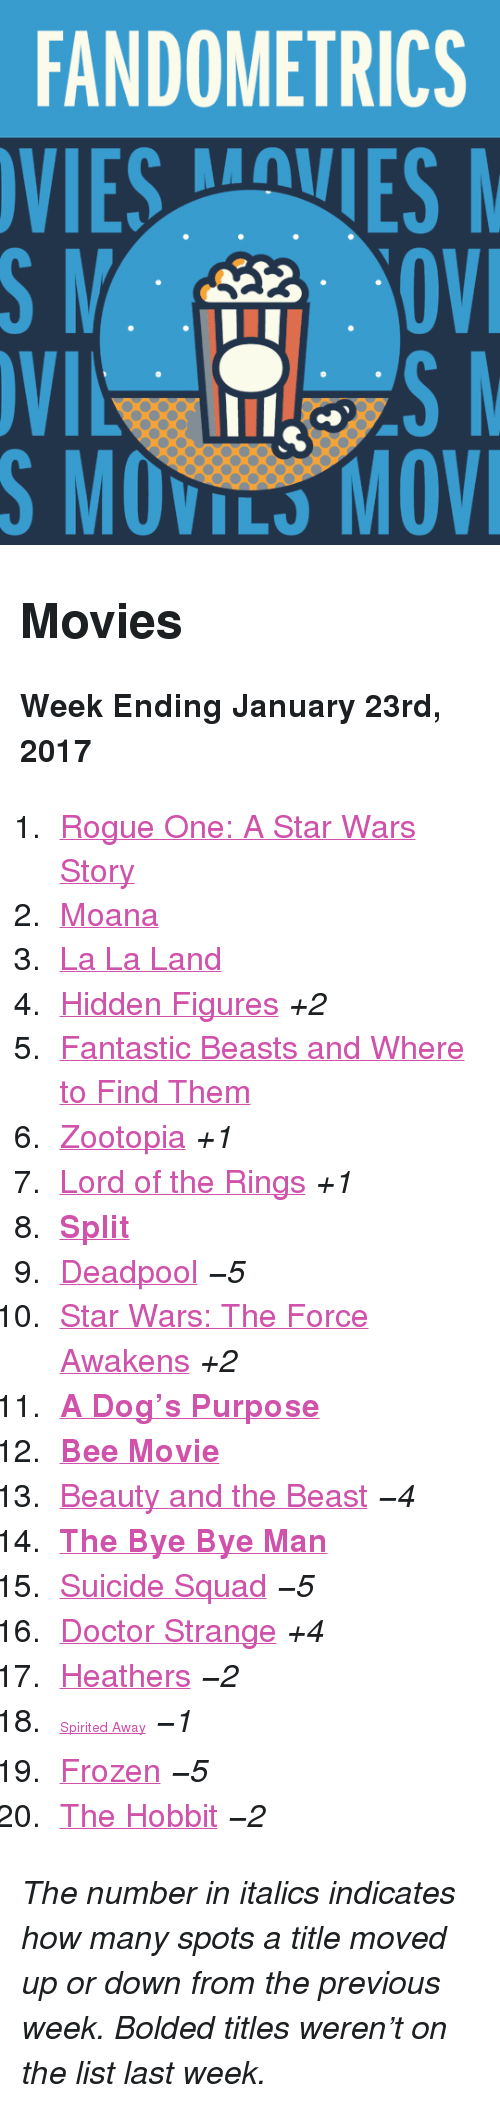 """Star Wars: The Force Awakens: FANDOMETRICS  VIESVES  S MOVILS MOV <h2>Movies</h2><p><b>Week Ending January 23rd, 2017</b></p><ol><li><a href=""""http://www.tumblr.com/search/rogue%20one"""">Rogue One: A Star Wars Story</a></li>  <li><a href=""""http://www.tumblr.com/search/moana"""">Moana</a></li>  <li><a href=""""http://www.tumblr.com/search/la%20la%20land"""">La La Land</a></li>  <li><a href=""""http://www.tumblr.com/search/hidden%20figures"""">Hidden Figures</a><i>+2</i></li>  <li><a href=""""http://www.tumblr.com/search/fantastic%20beasts%20and%20where%20to%20find%20them"""">Fantastic Beasts and Where to Find Them</a></li>  <li><a href=""""http://www.tumblr.com/search/zootopia"""">Zootopia</a><i>+1</i></li>  <li><a href=""""http://www.tumblr.com/search/lotr"""">Lord of the Rings</a><i>+1</i></li>  <li><a href=""""http://www.tumblr.com/search/split""""><b>Split</b></a></li>  <li><a href=""""http://www.tumblr.com/search/deadpool"""">Deadpool</a><i>−5</i></li>  <li><a href=""""http://www.tumblr.com/search/the%20force%20awakens"""">Star Wars: The Force Awakens</a><i>+2</i></li>  <li><a href=""""http://www.tumblr.com/search/a%20dogs%20purpose""""><b>A Dog&rsquo;s Purpose</b></a></li>  <li><a href=""""http://www.tumblr.com/search/bee%20movie""""><b>Bee Movie</b></a></li>  <li><a href=""""http://www.tumblr.com/search/beauty%20and%20the%20beast"""">Beauty and the Beast</a><i>−4</i></li>  <li><a href=""""http://www.tumblr.com/search/the%20bye%20bye%20man""""><b>The Bye Bye Man</b></a></li>  <li><a href=""""http://www.tumblr.com/search/suicide%20squad"""">Suicide Squad</a><i>−5</i></li>  <li><a href=""""http://www.tumblr.com/search/doctor%20strange"""">Doctor Strange</a><i>+4</i></li>  <li><a href=""""http://www.tumblr.com/search/heathers"""">Heathers</a><i>−2</i></li><li><a href=""""http://www.tumblr.com/search/spirited%20away"""" style=""""font-size: 14px;"""">Spirited Away</a><i>−1</i></li>  <li><a href=""""http://www.tumblr.com/search/frozen"""">Frozen</a><i>−5</i></li>  <li><a href=""""http://www.tumblr.com/search/the%20hobbit"""">The Hobbit</a><i>−2</i></li></ol><p><i>The number in italics"""